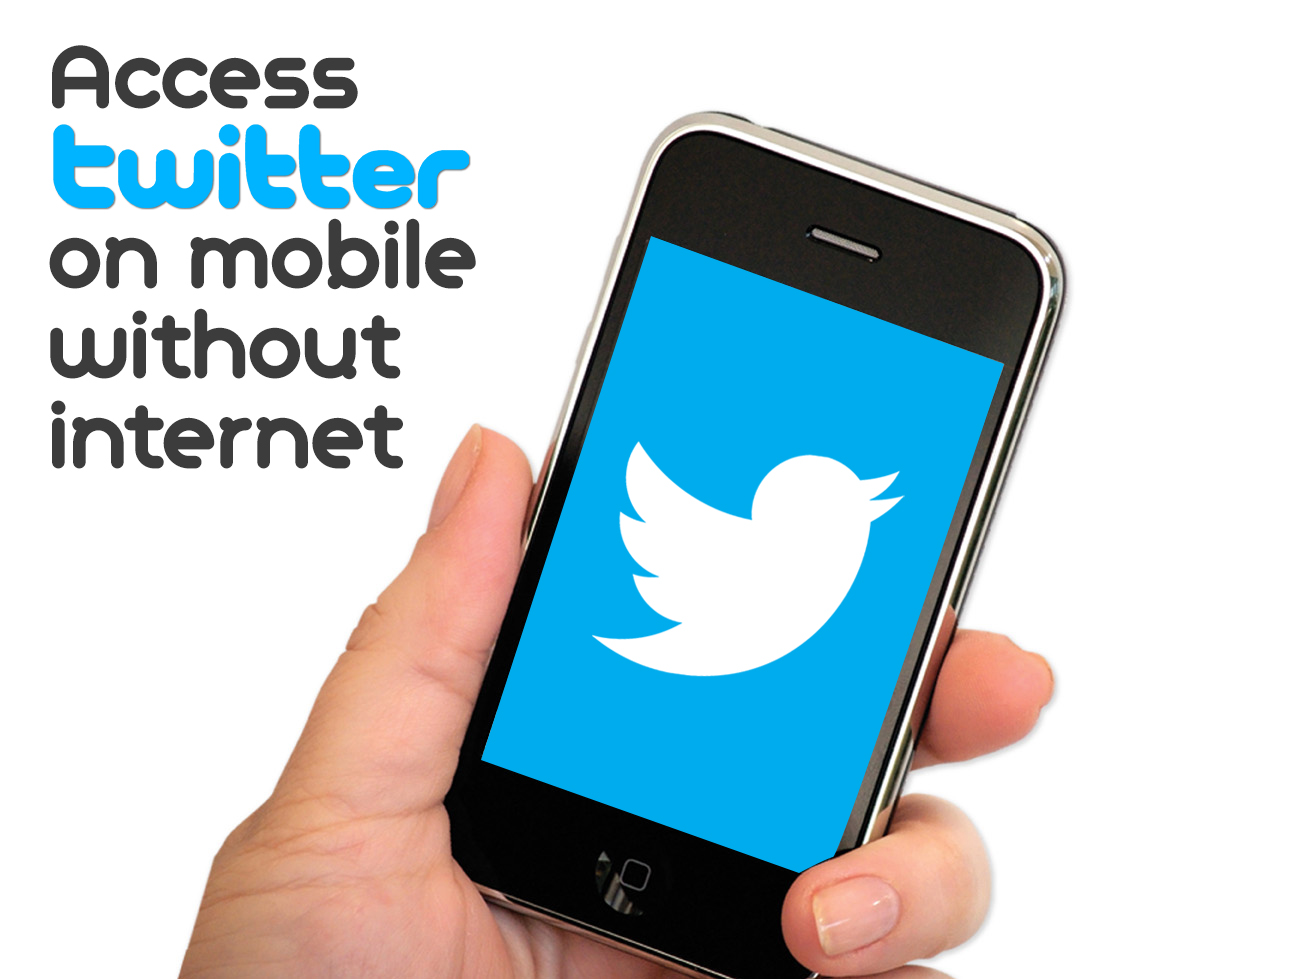 Access Twitter on your Mobile without internet